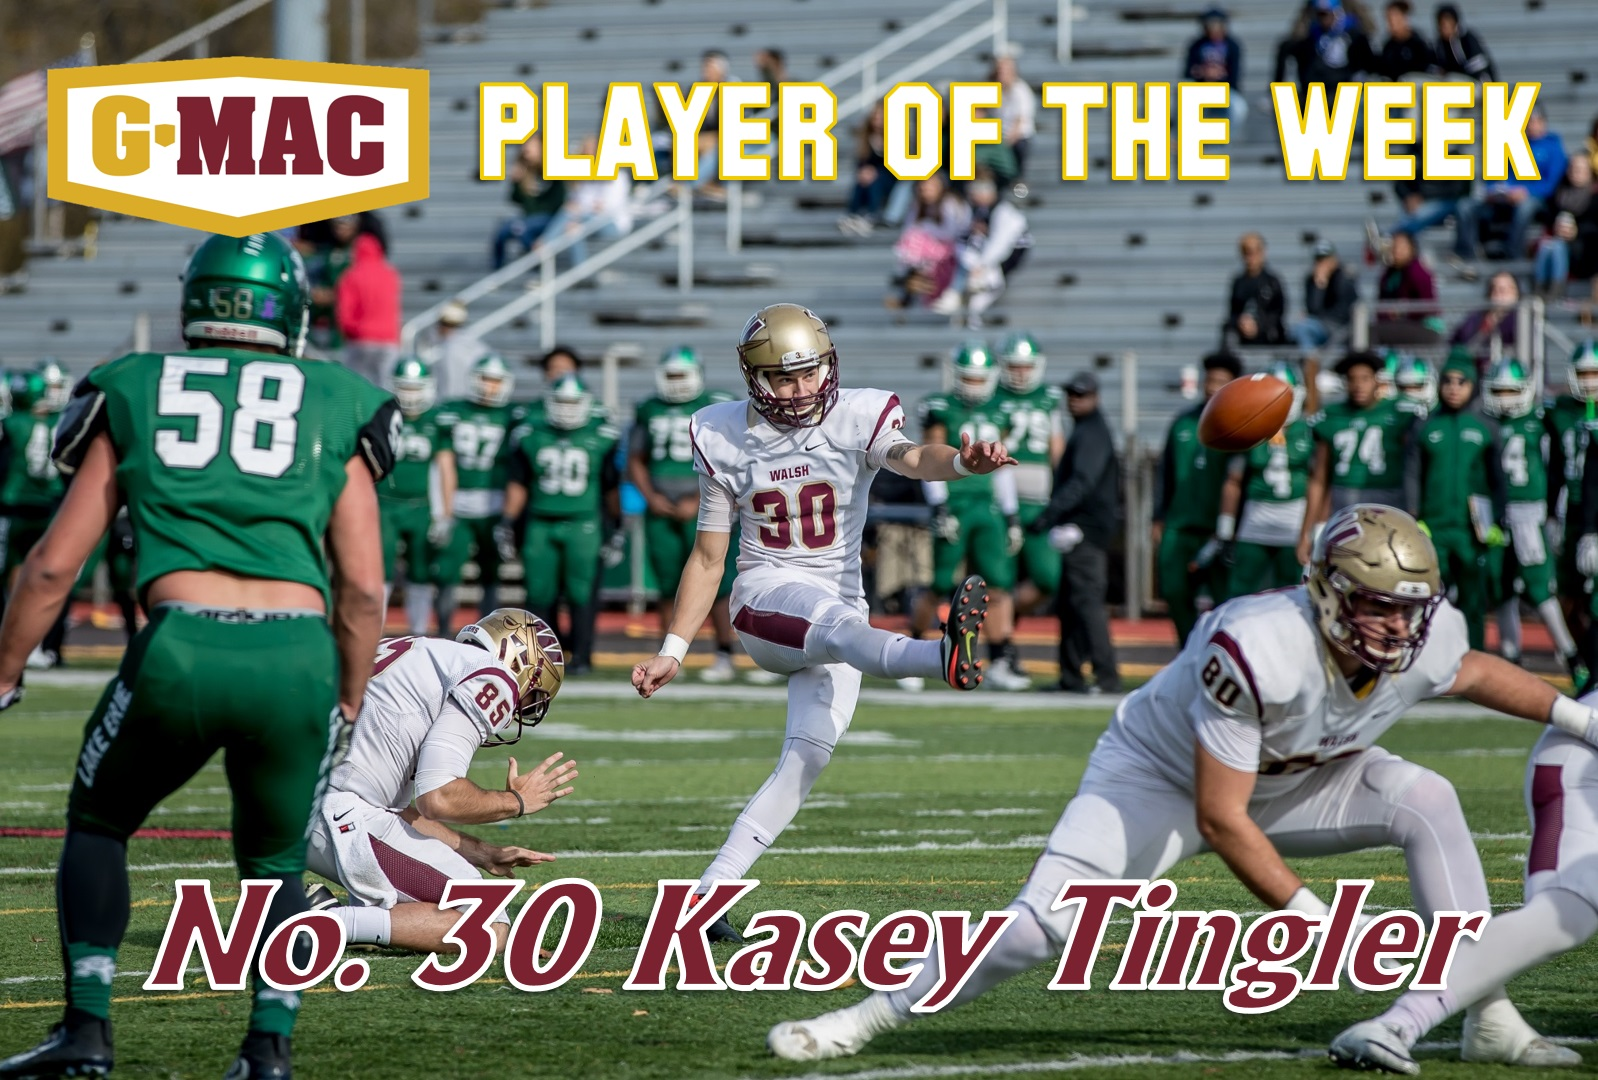 Tingler Named G-MAC Special Teams Player of the Week